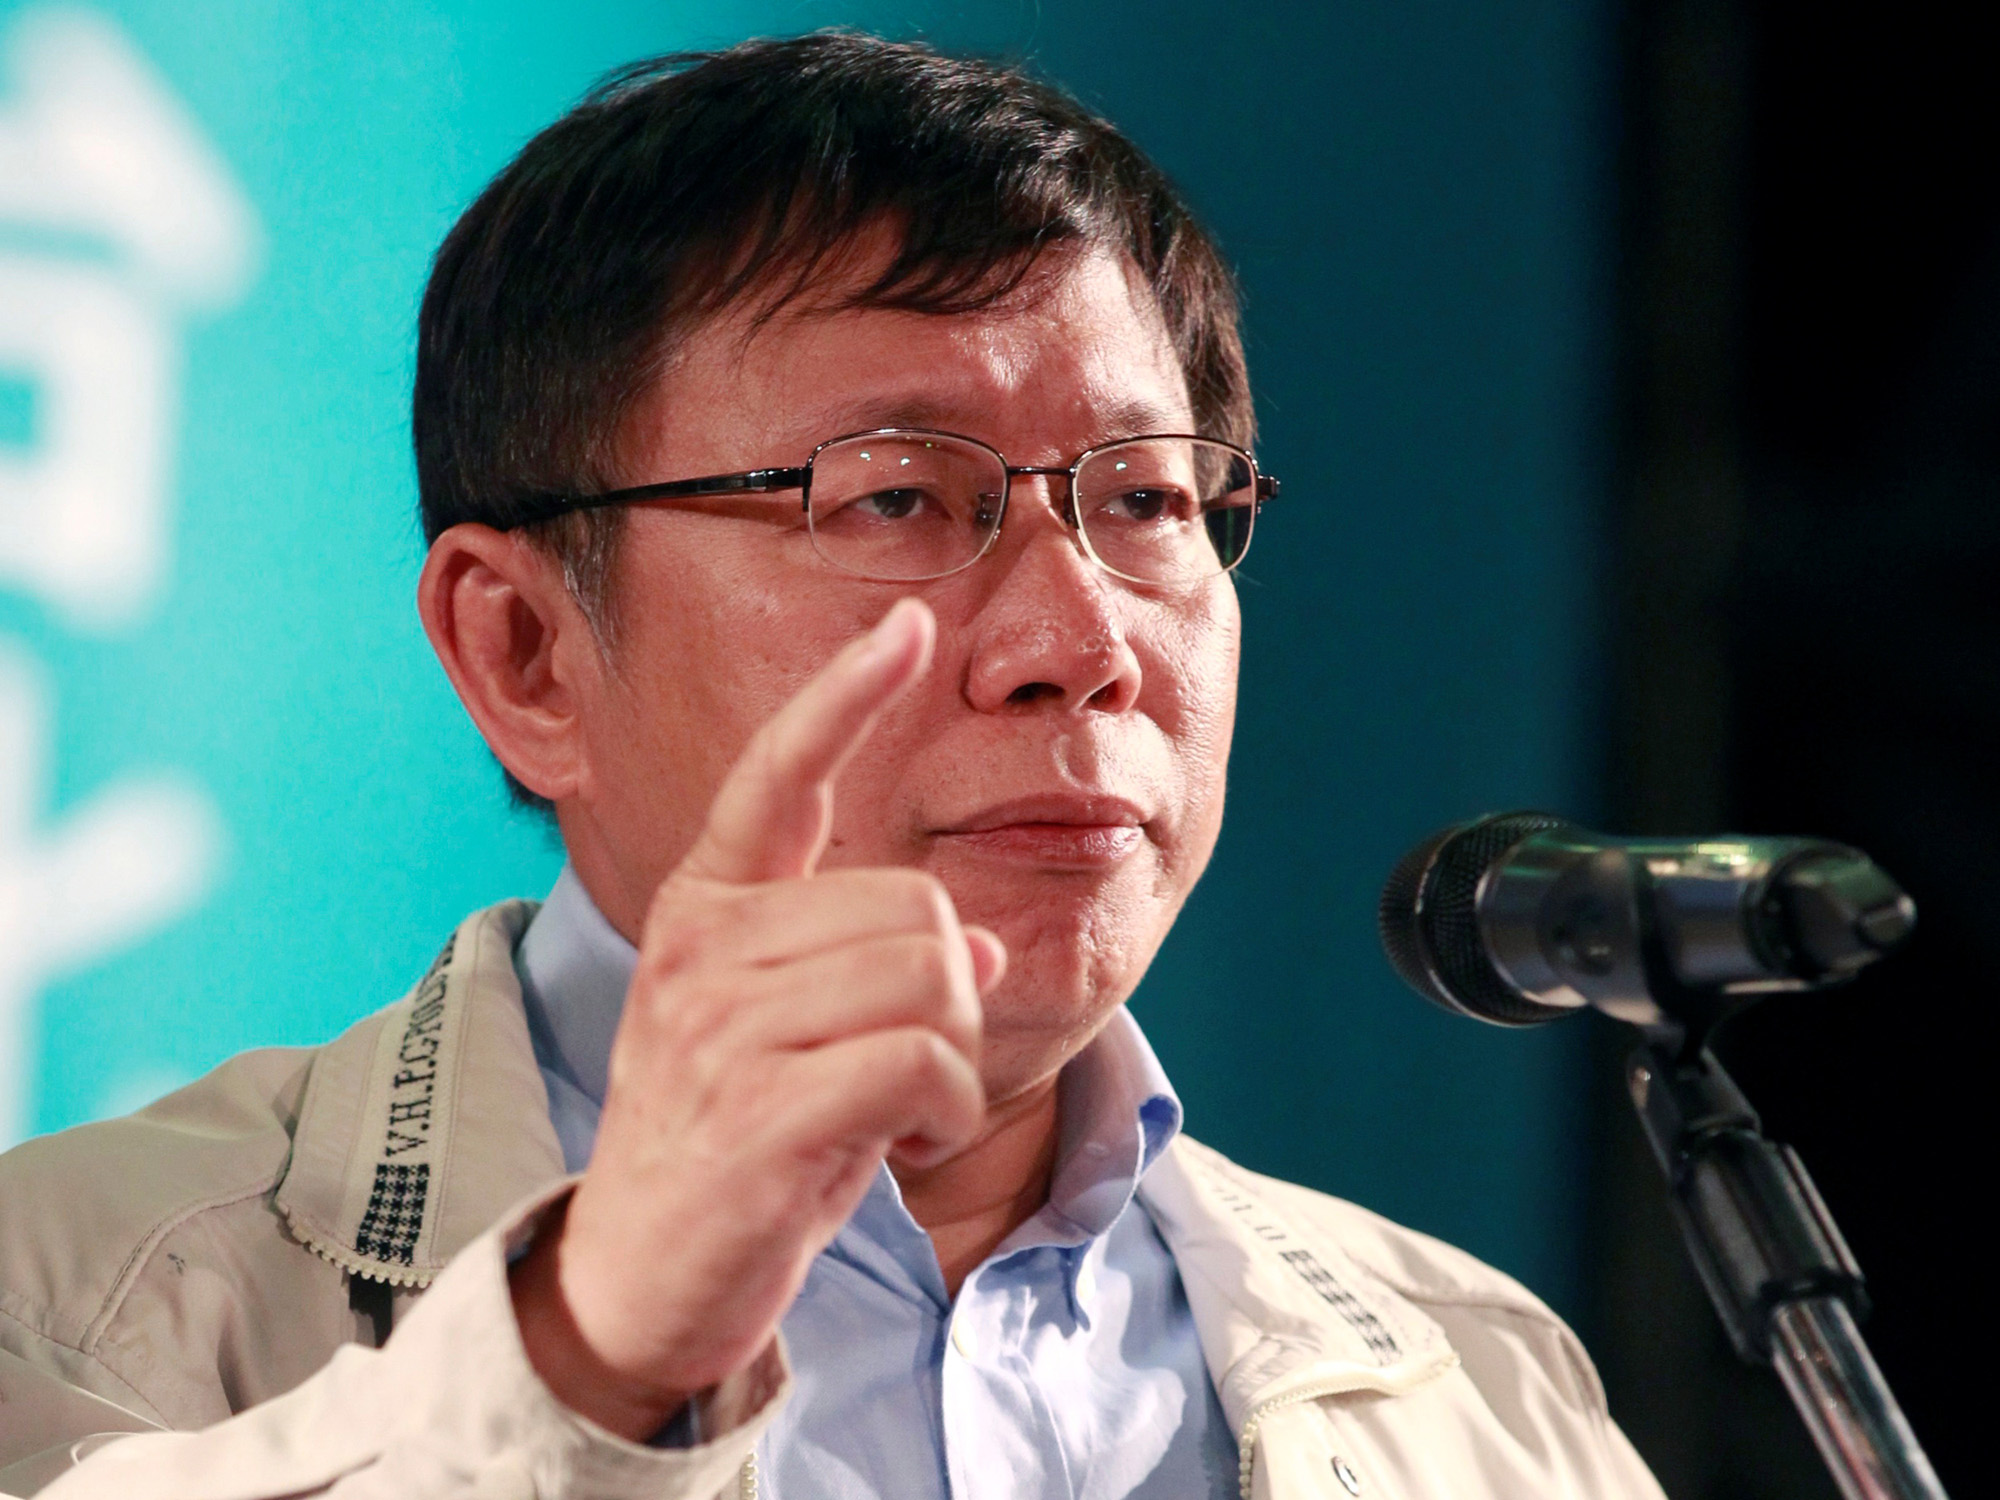 Taipei mayoral candidate Ko Wen-je speaks after winning an election at his campaign headquarters in Taipei in November 2014. | REUTERS